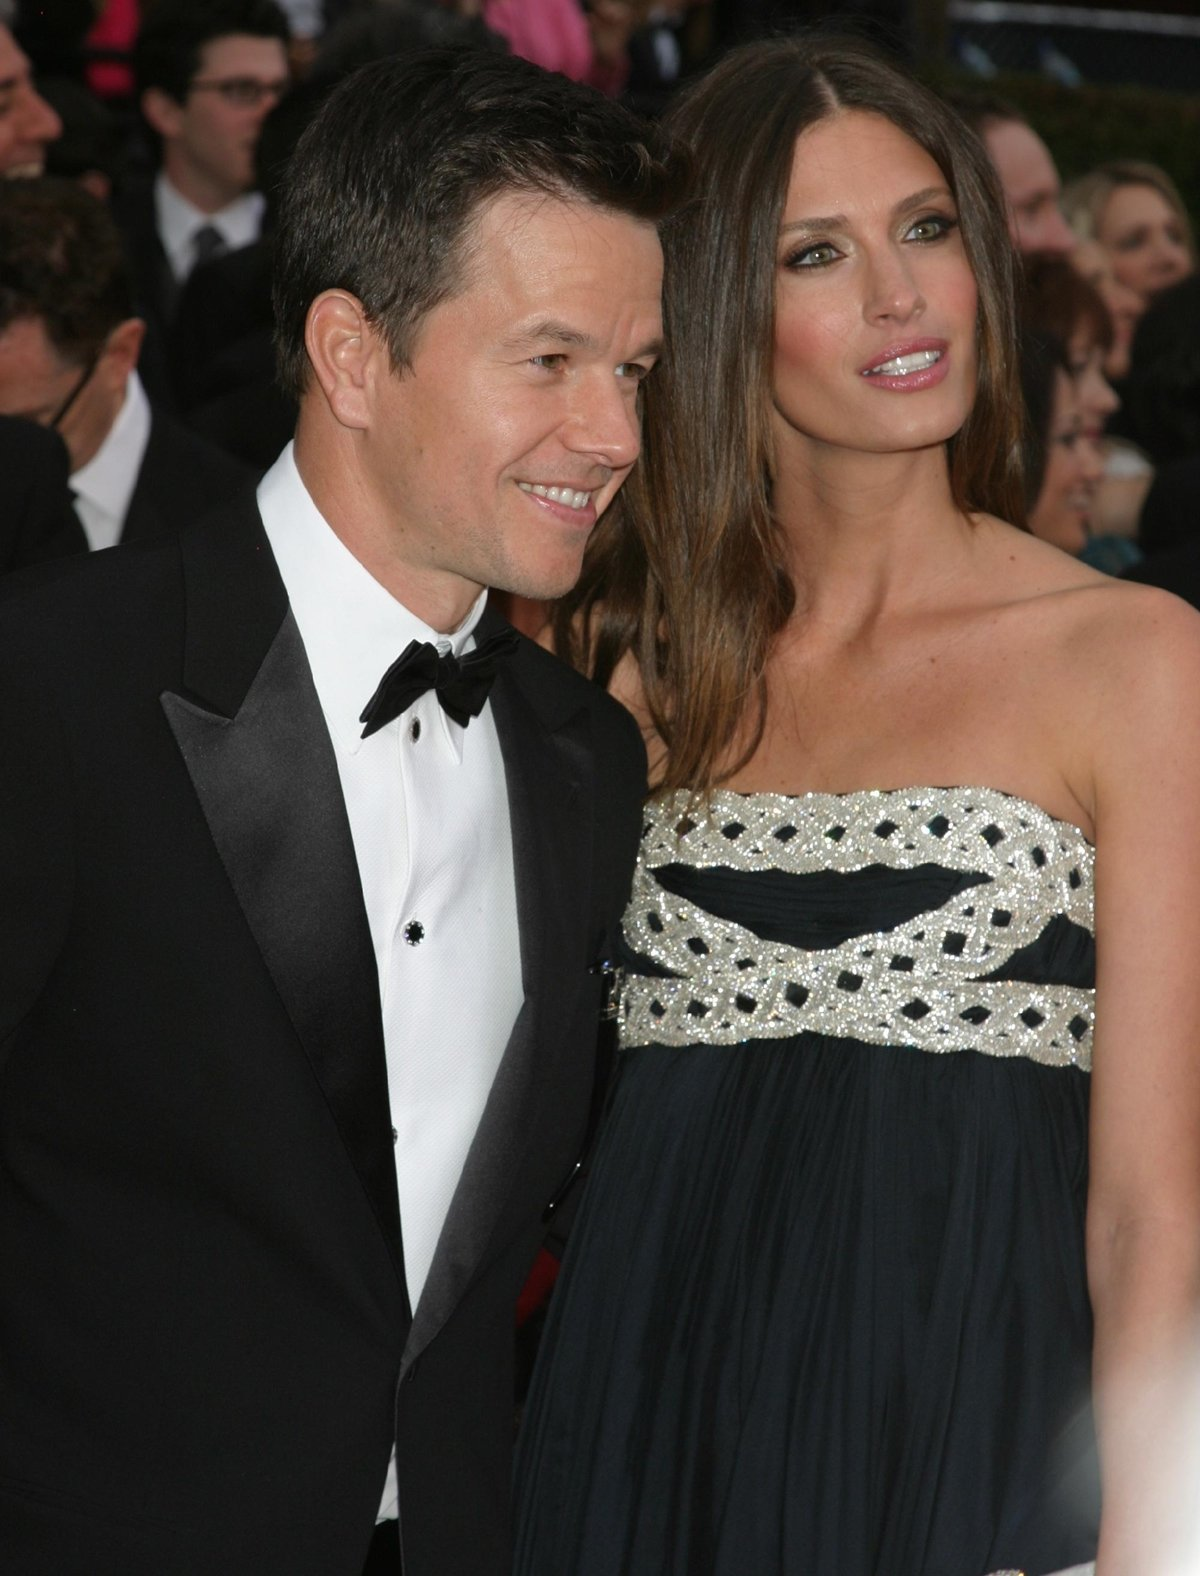 Actor Mark Wahlberg in a Giorgio Armani tuxedo and his wife Rhea Durham in a Marchesa dress at the 79th Annual Academy Awards